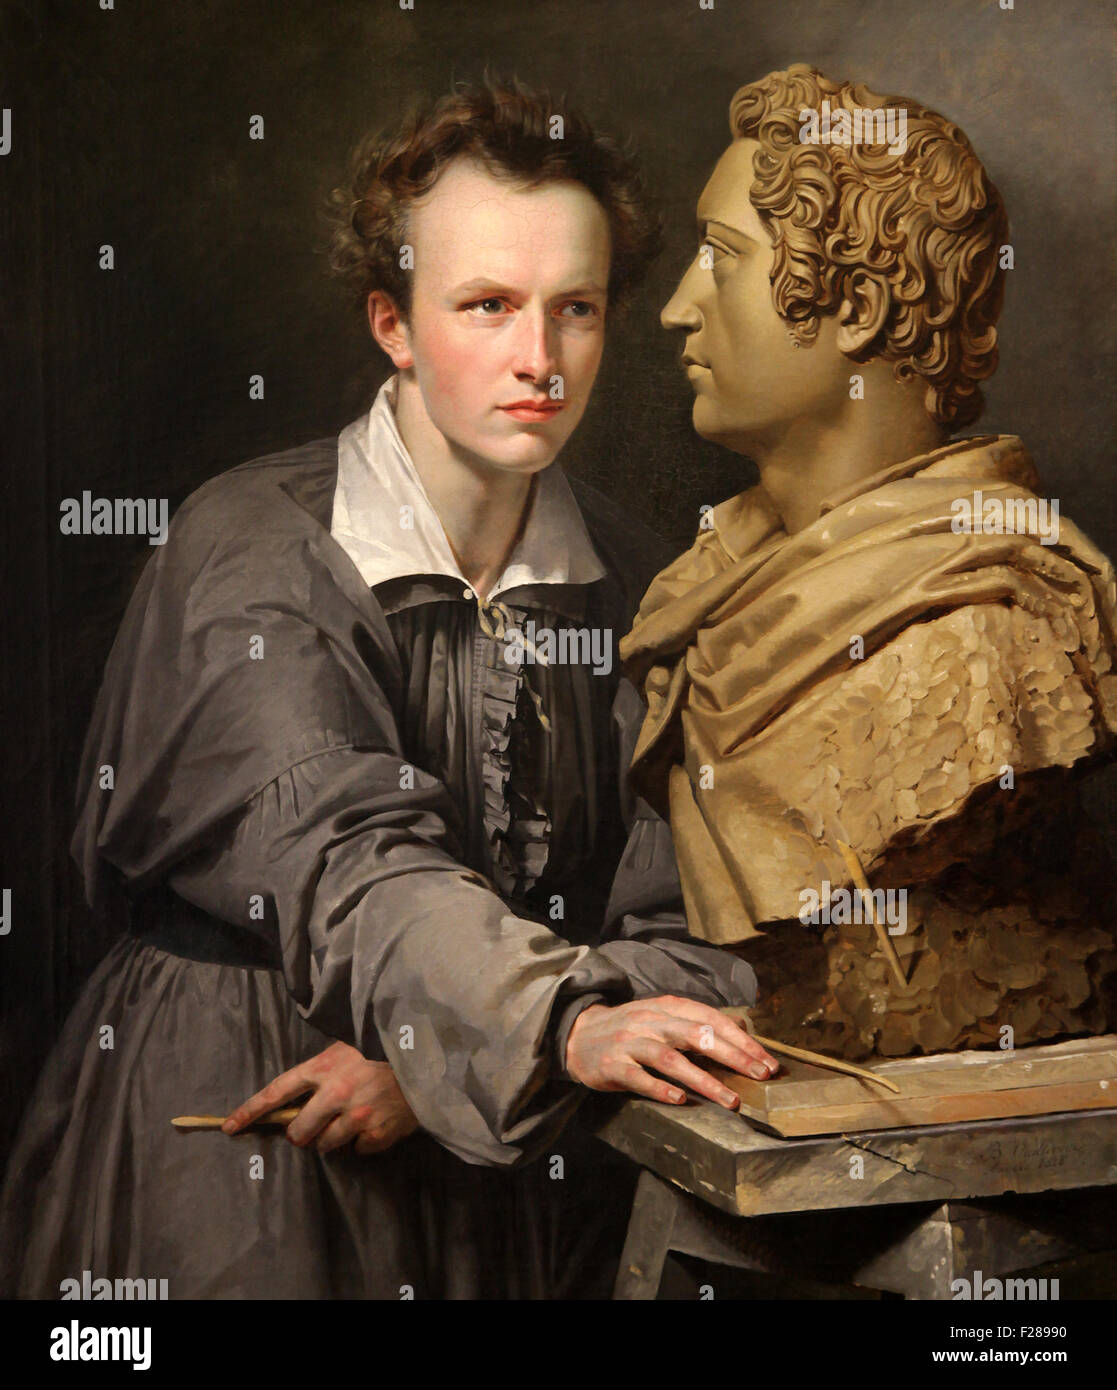 Portrait of the Bossche sculptor van der Ven by Vieillevoye 1798-1855 - Stock Image